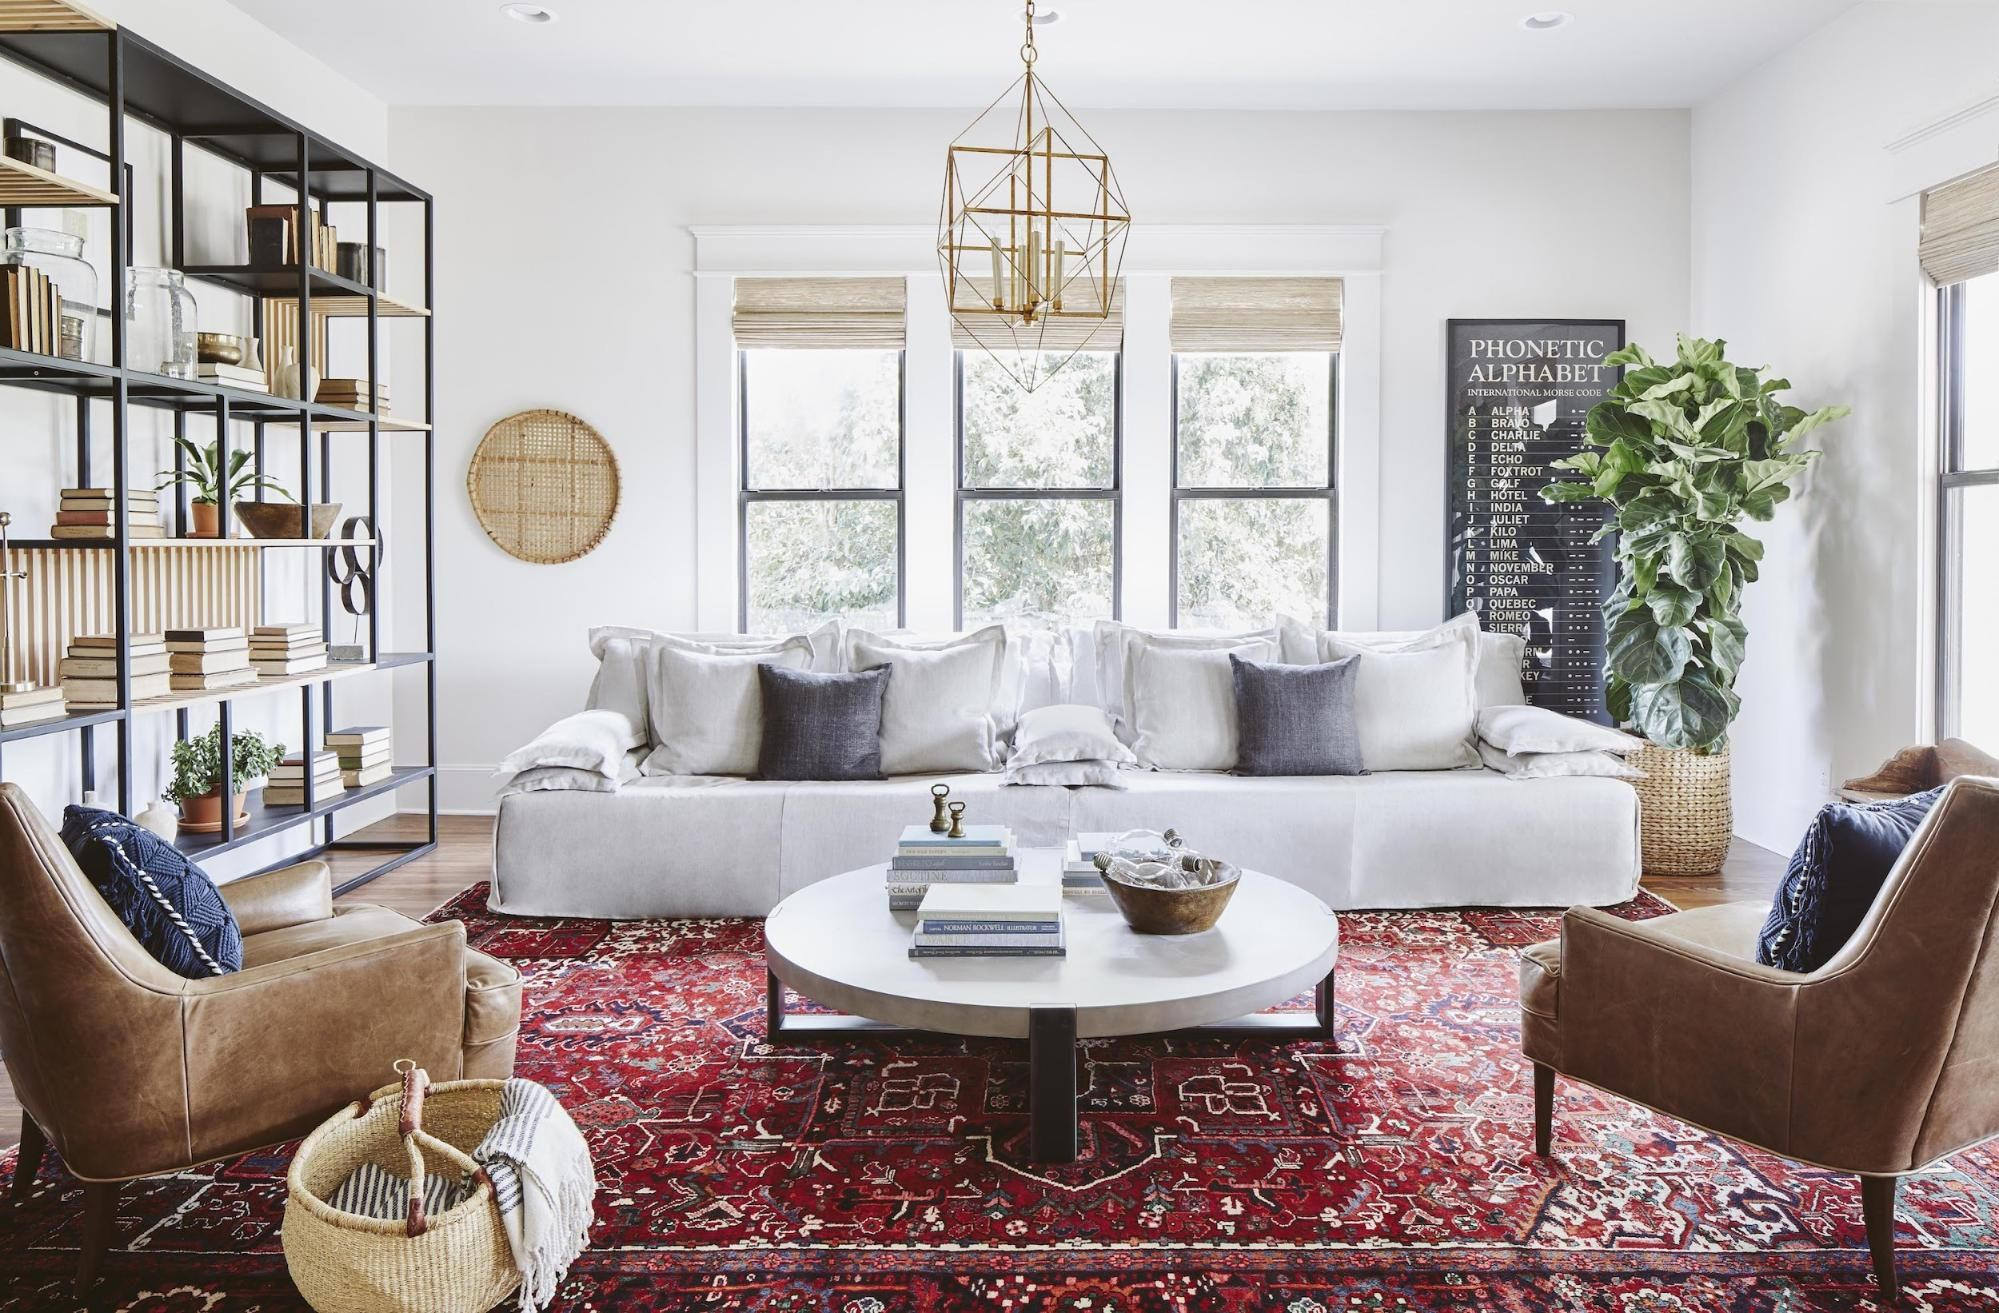 21+ Farmhouse living room with oriental rug ideas in 2021